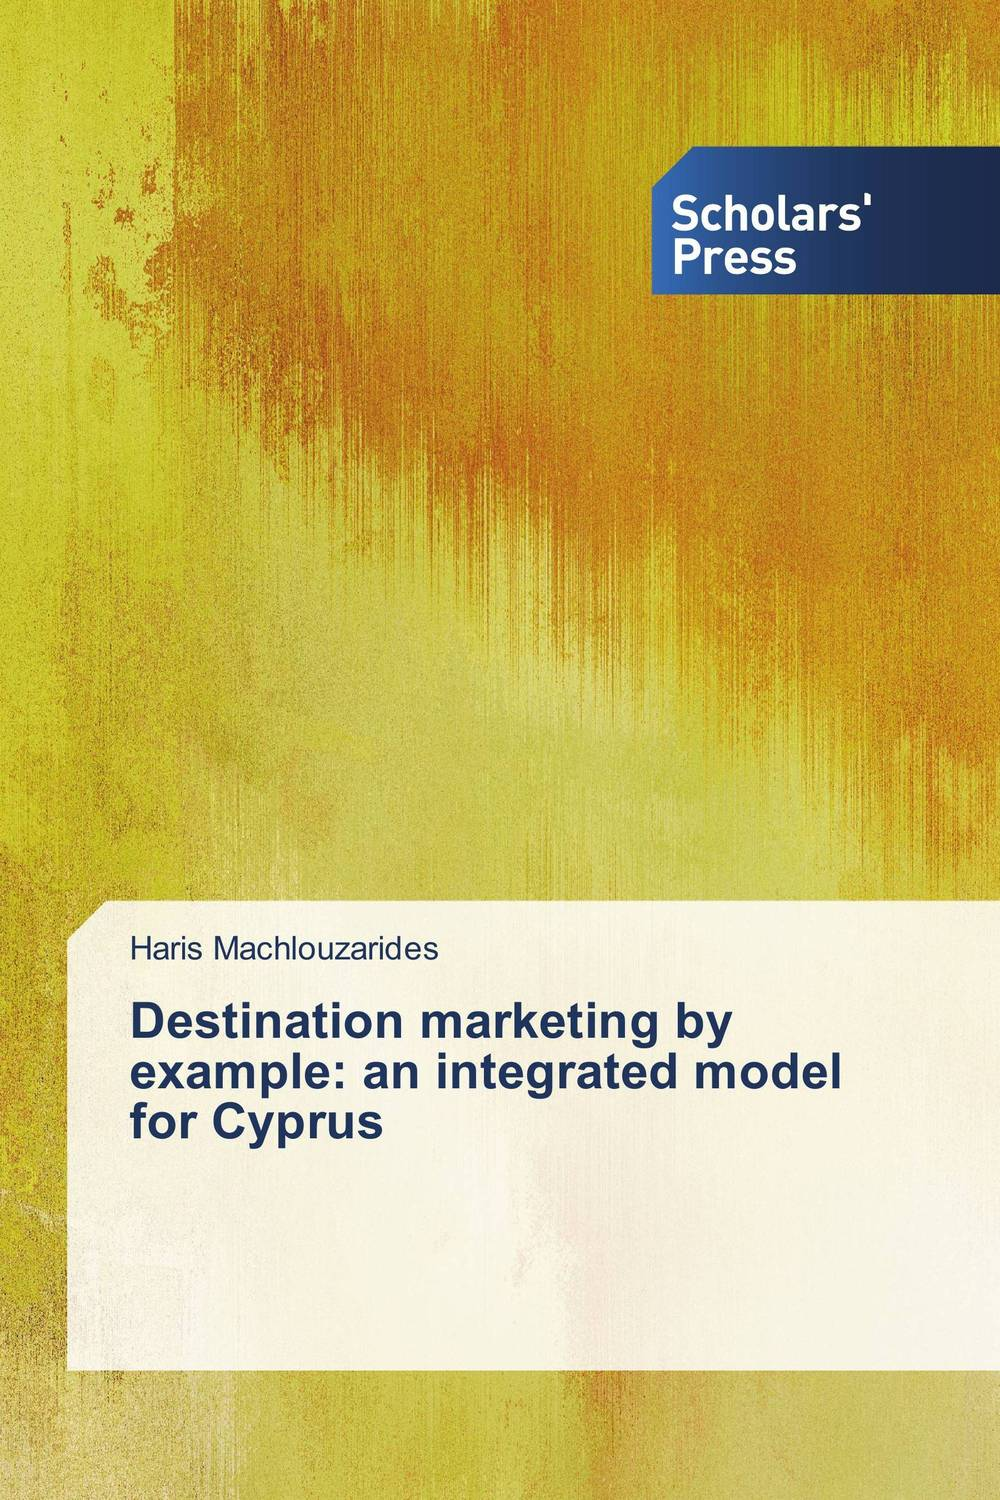 Destination marketing by example: an integrated model for Cyprus integration marketing